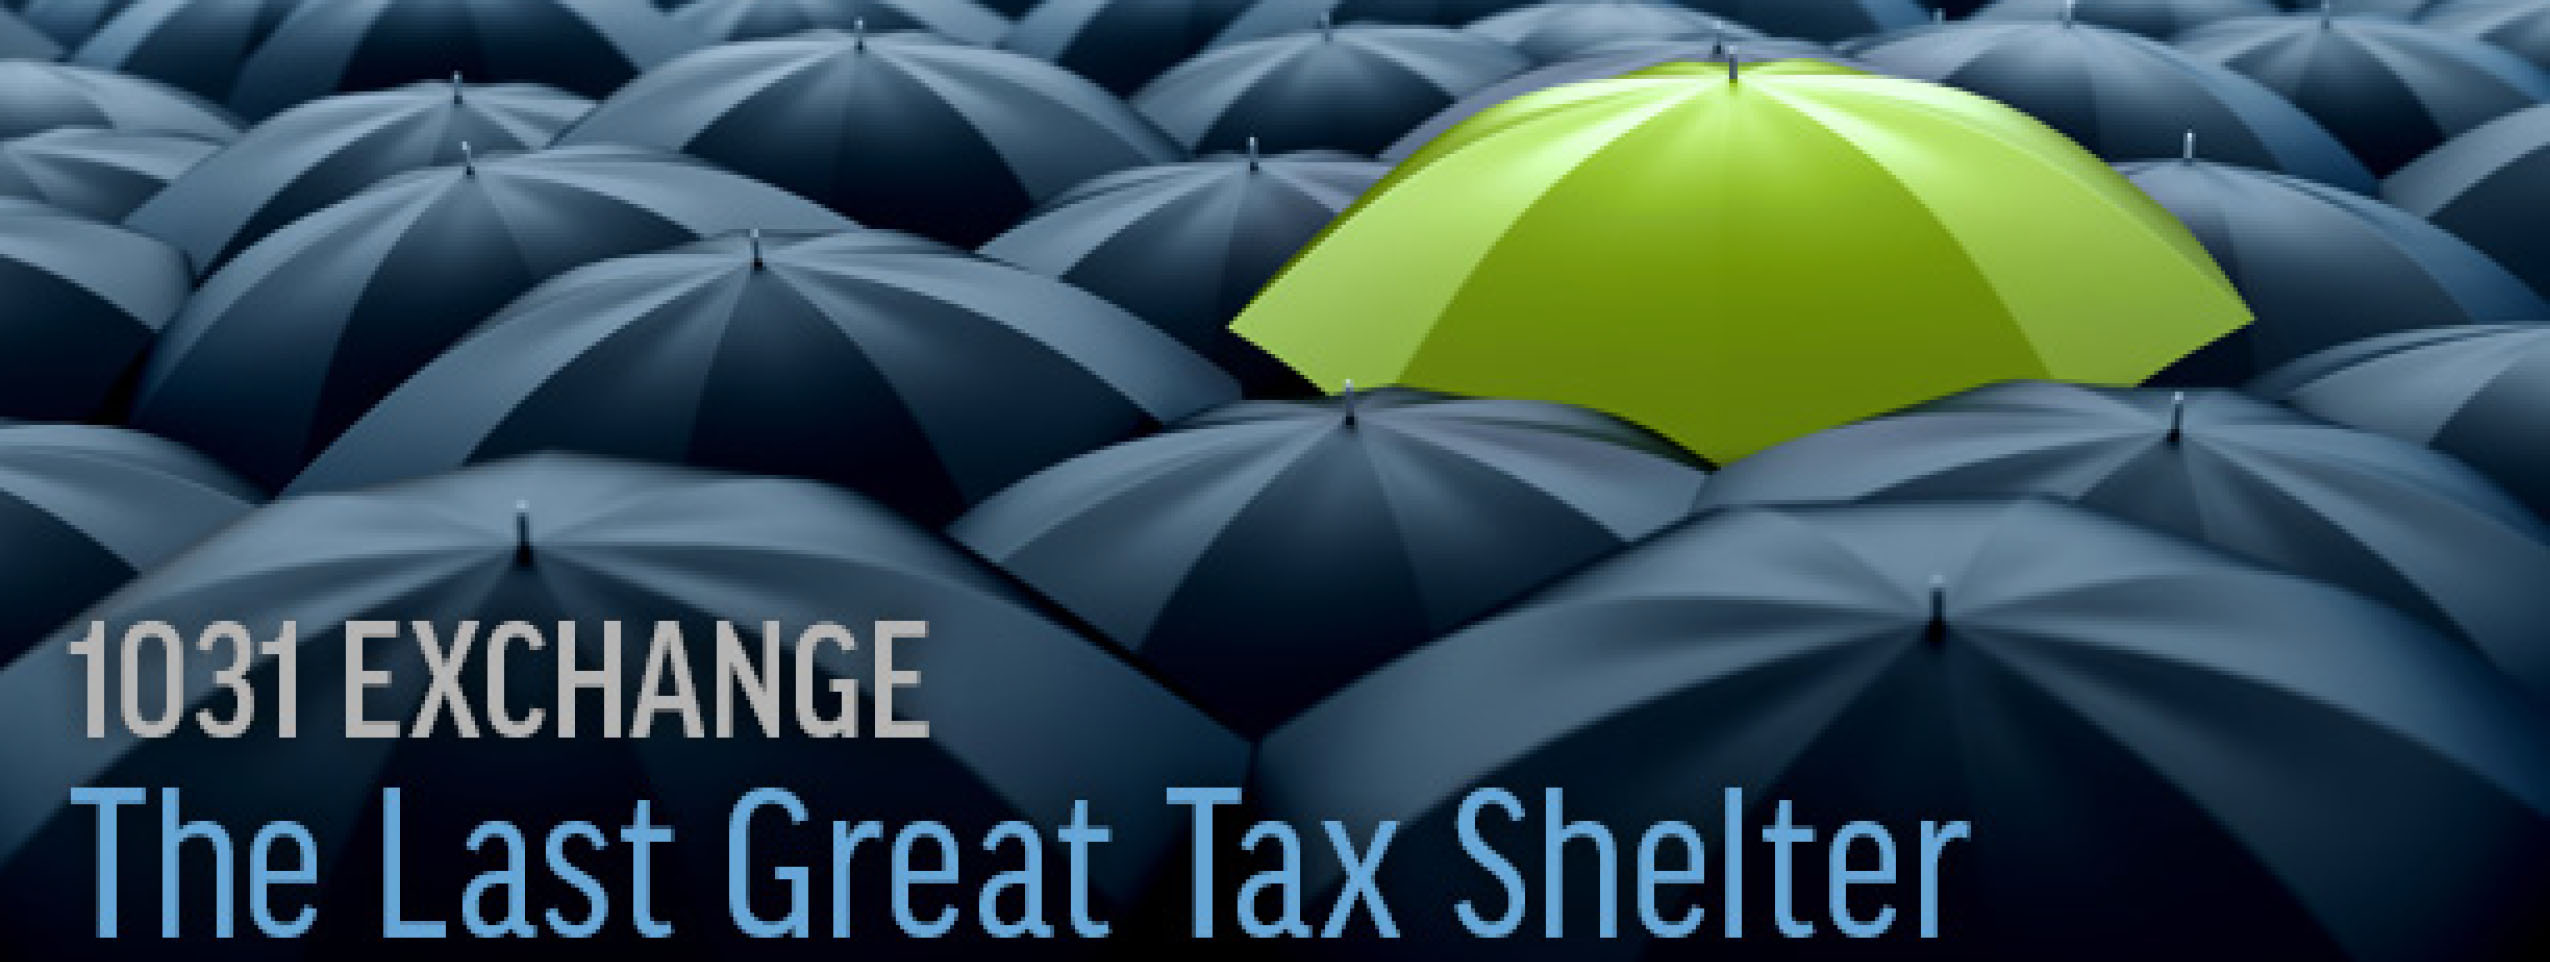 1031 Exchange: The Last Great Tax Shelter